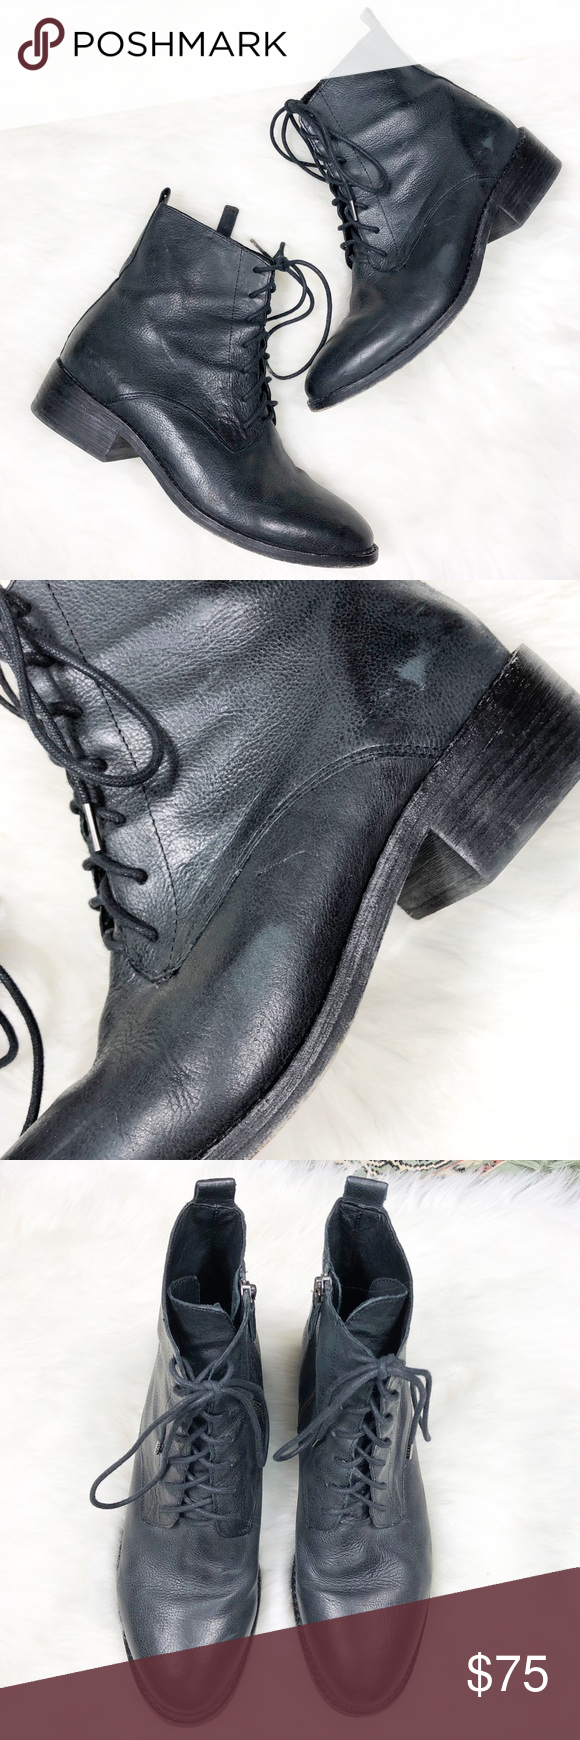 2b96293d0 Eileen Fisher Leather Lace Up Bravo Booties Boots Gorgeous ankle boots by  Eileen Fisher that add